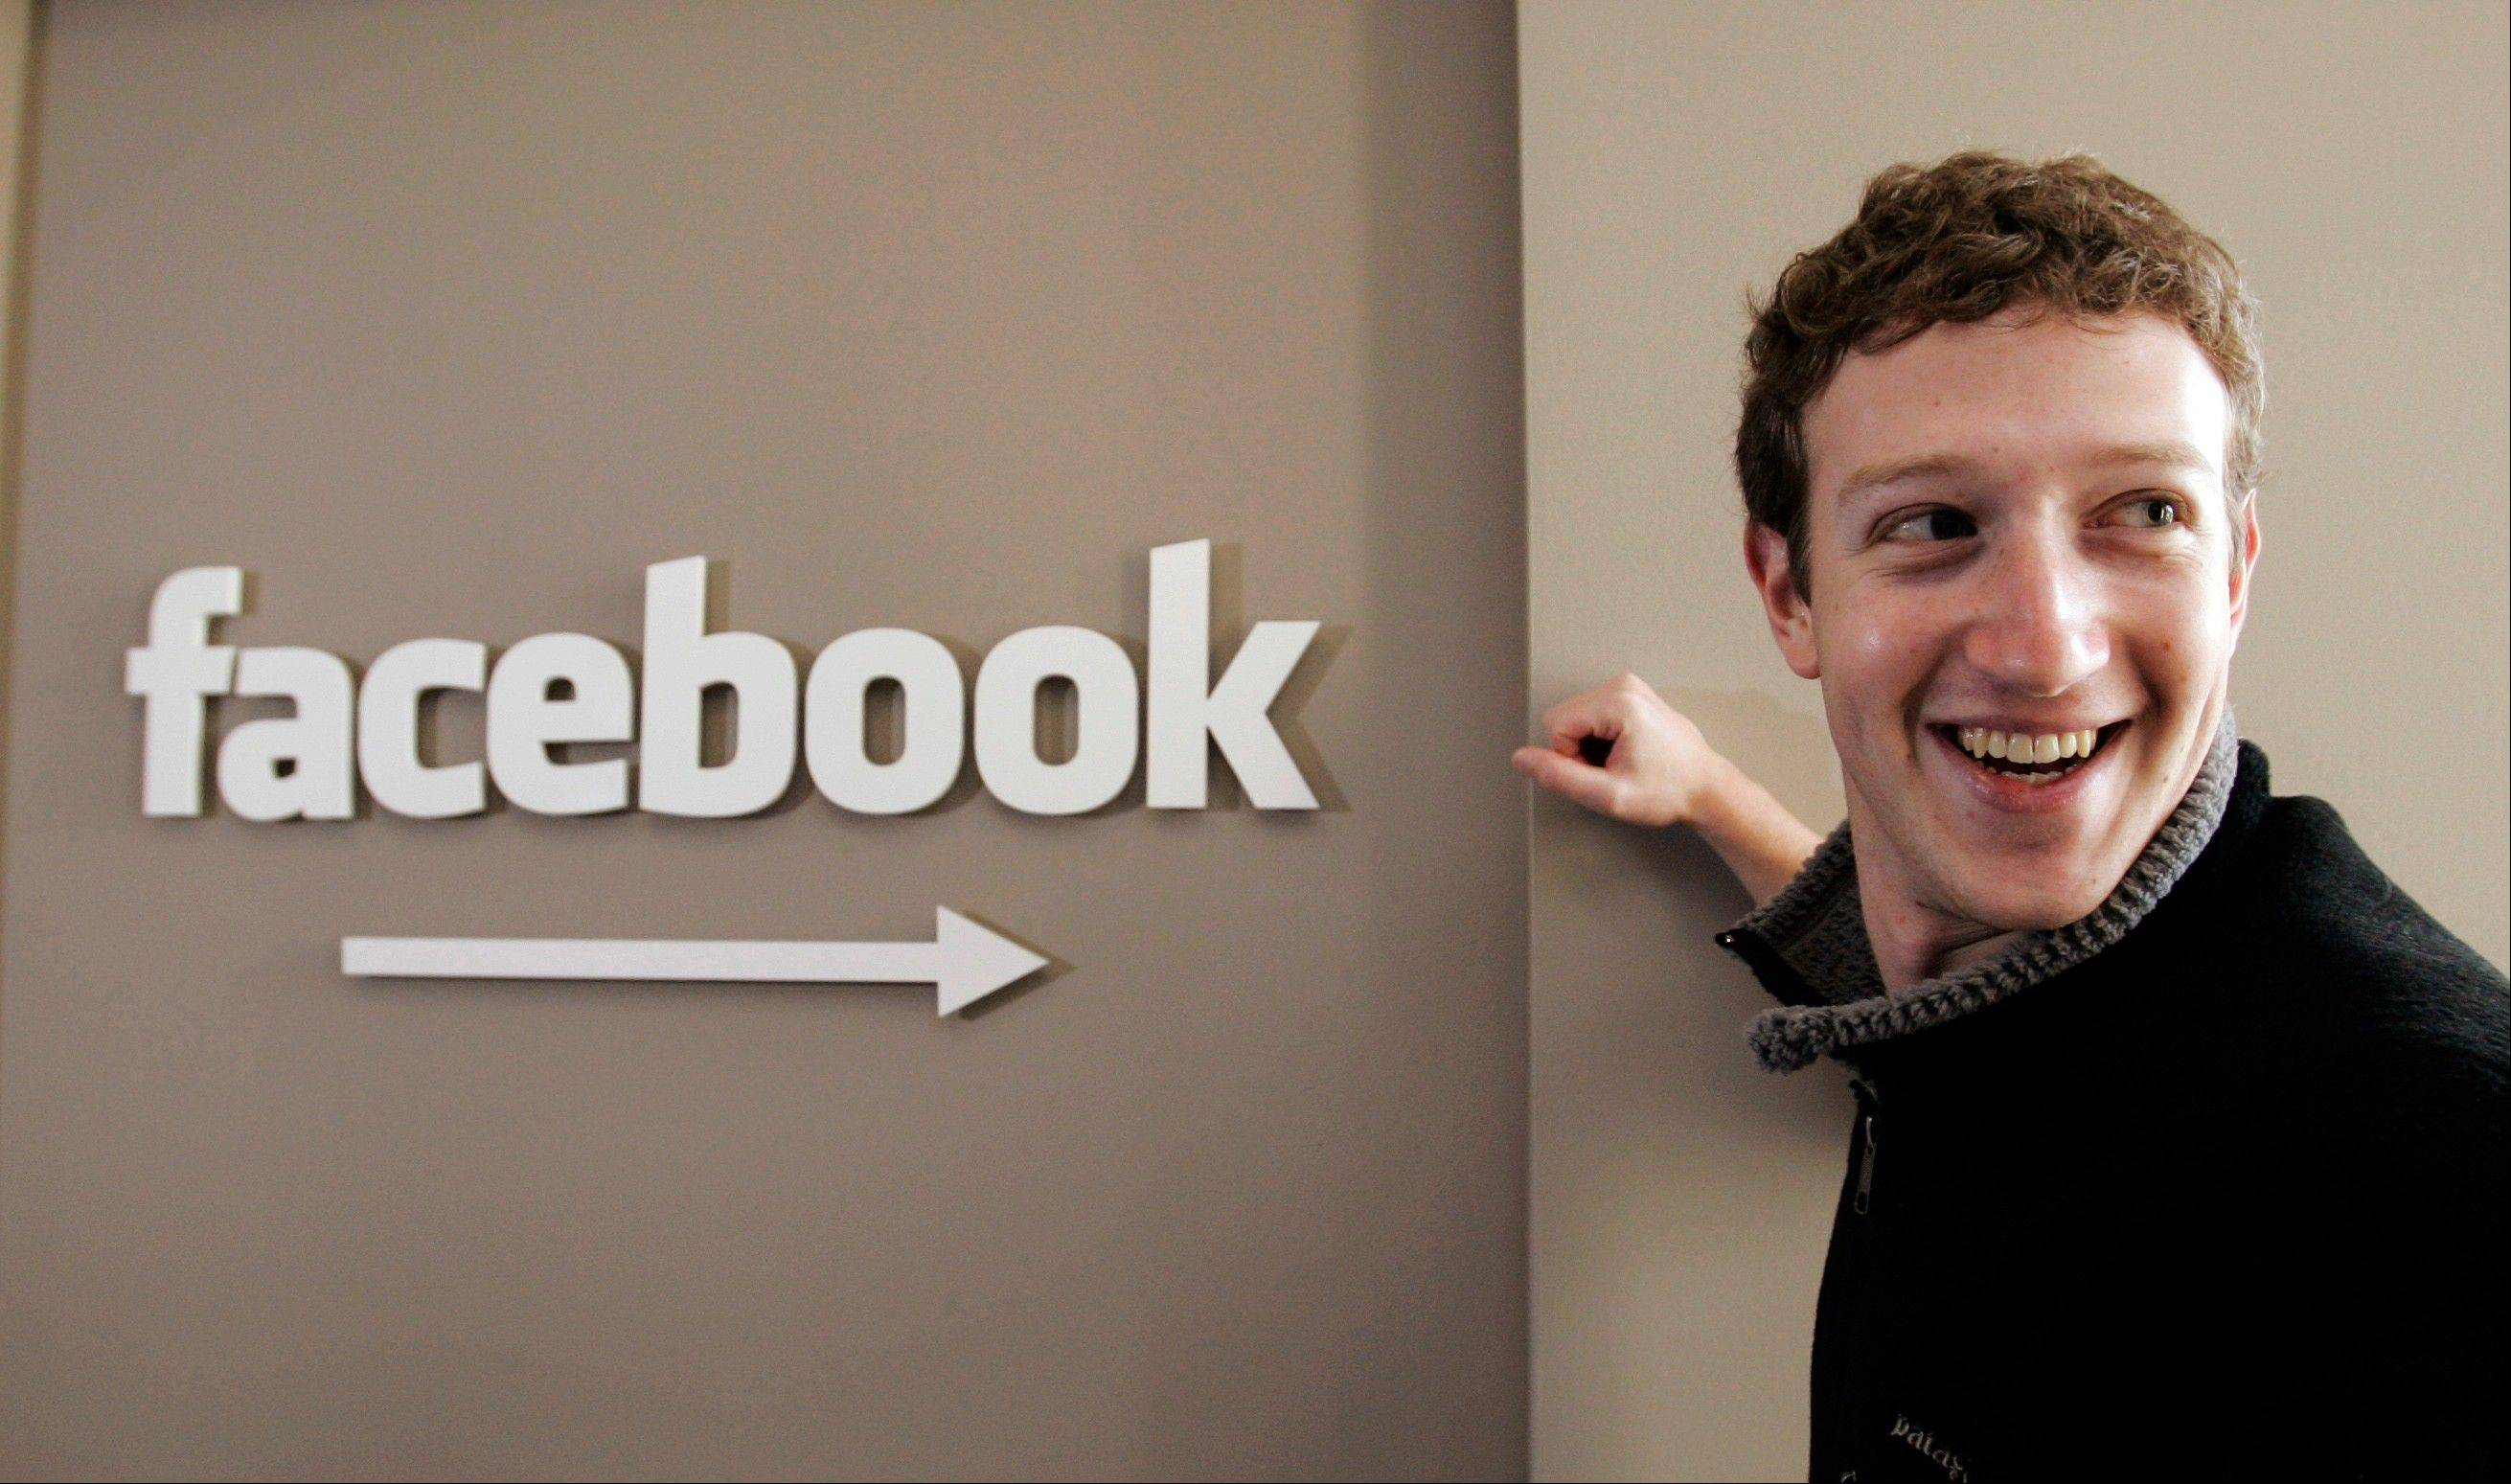 Facebook on Tuesday celebrated 10 years since Mark Zuckerberg created a website called Thefacebook.com to let his classmates find their friends online.